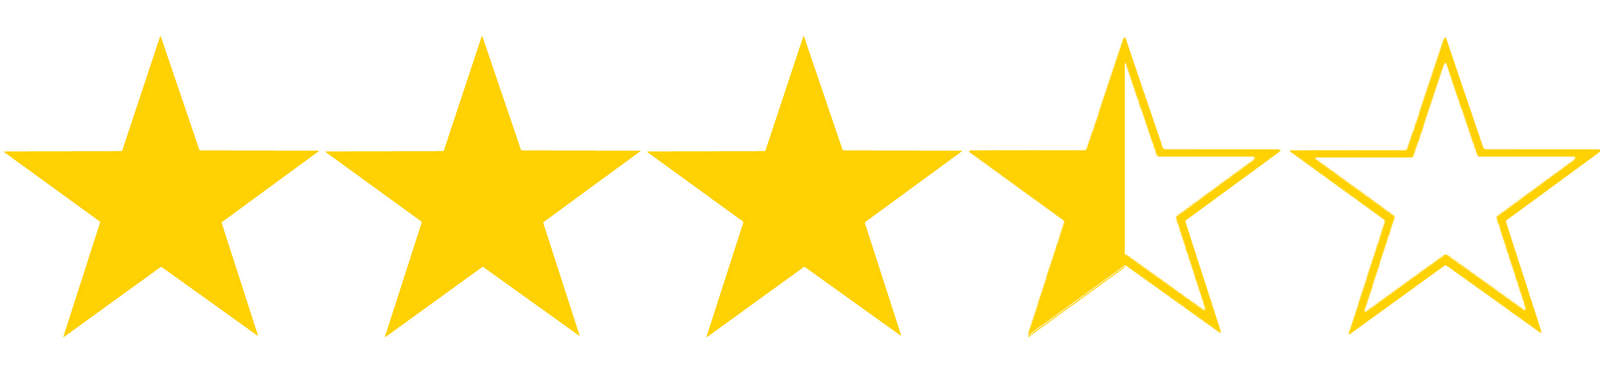 Image of 3.5 out 5 star ratings